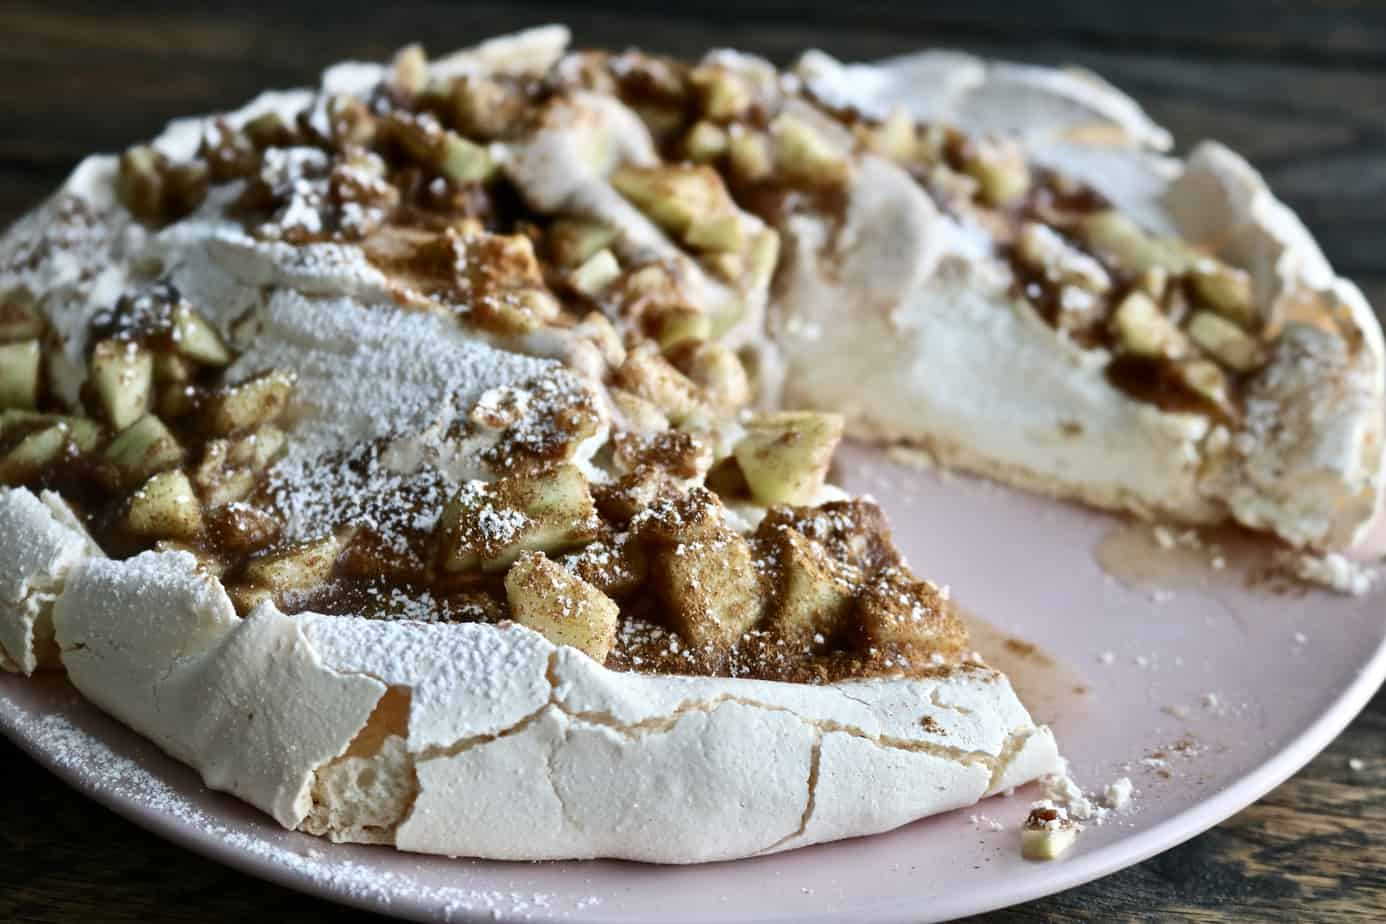 Incredible Apple Cinnamon Pavlova with Coconut Whip Cream